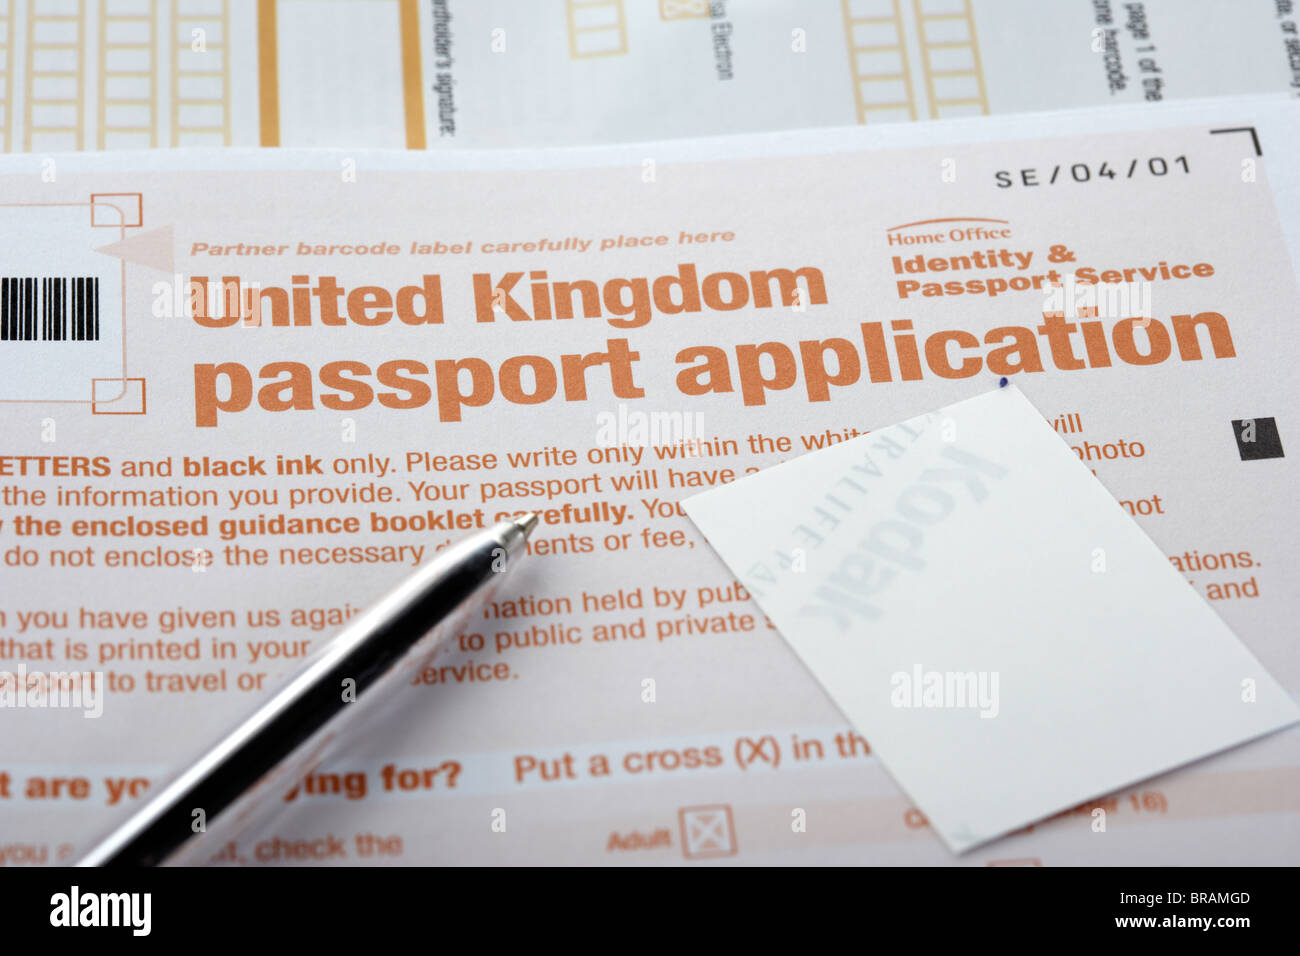 United kingdom home office identity and passport service passport united kingdom home office identity and passport service passport application form pen and photo falaconquin